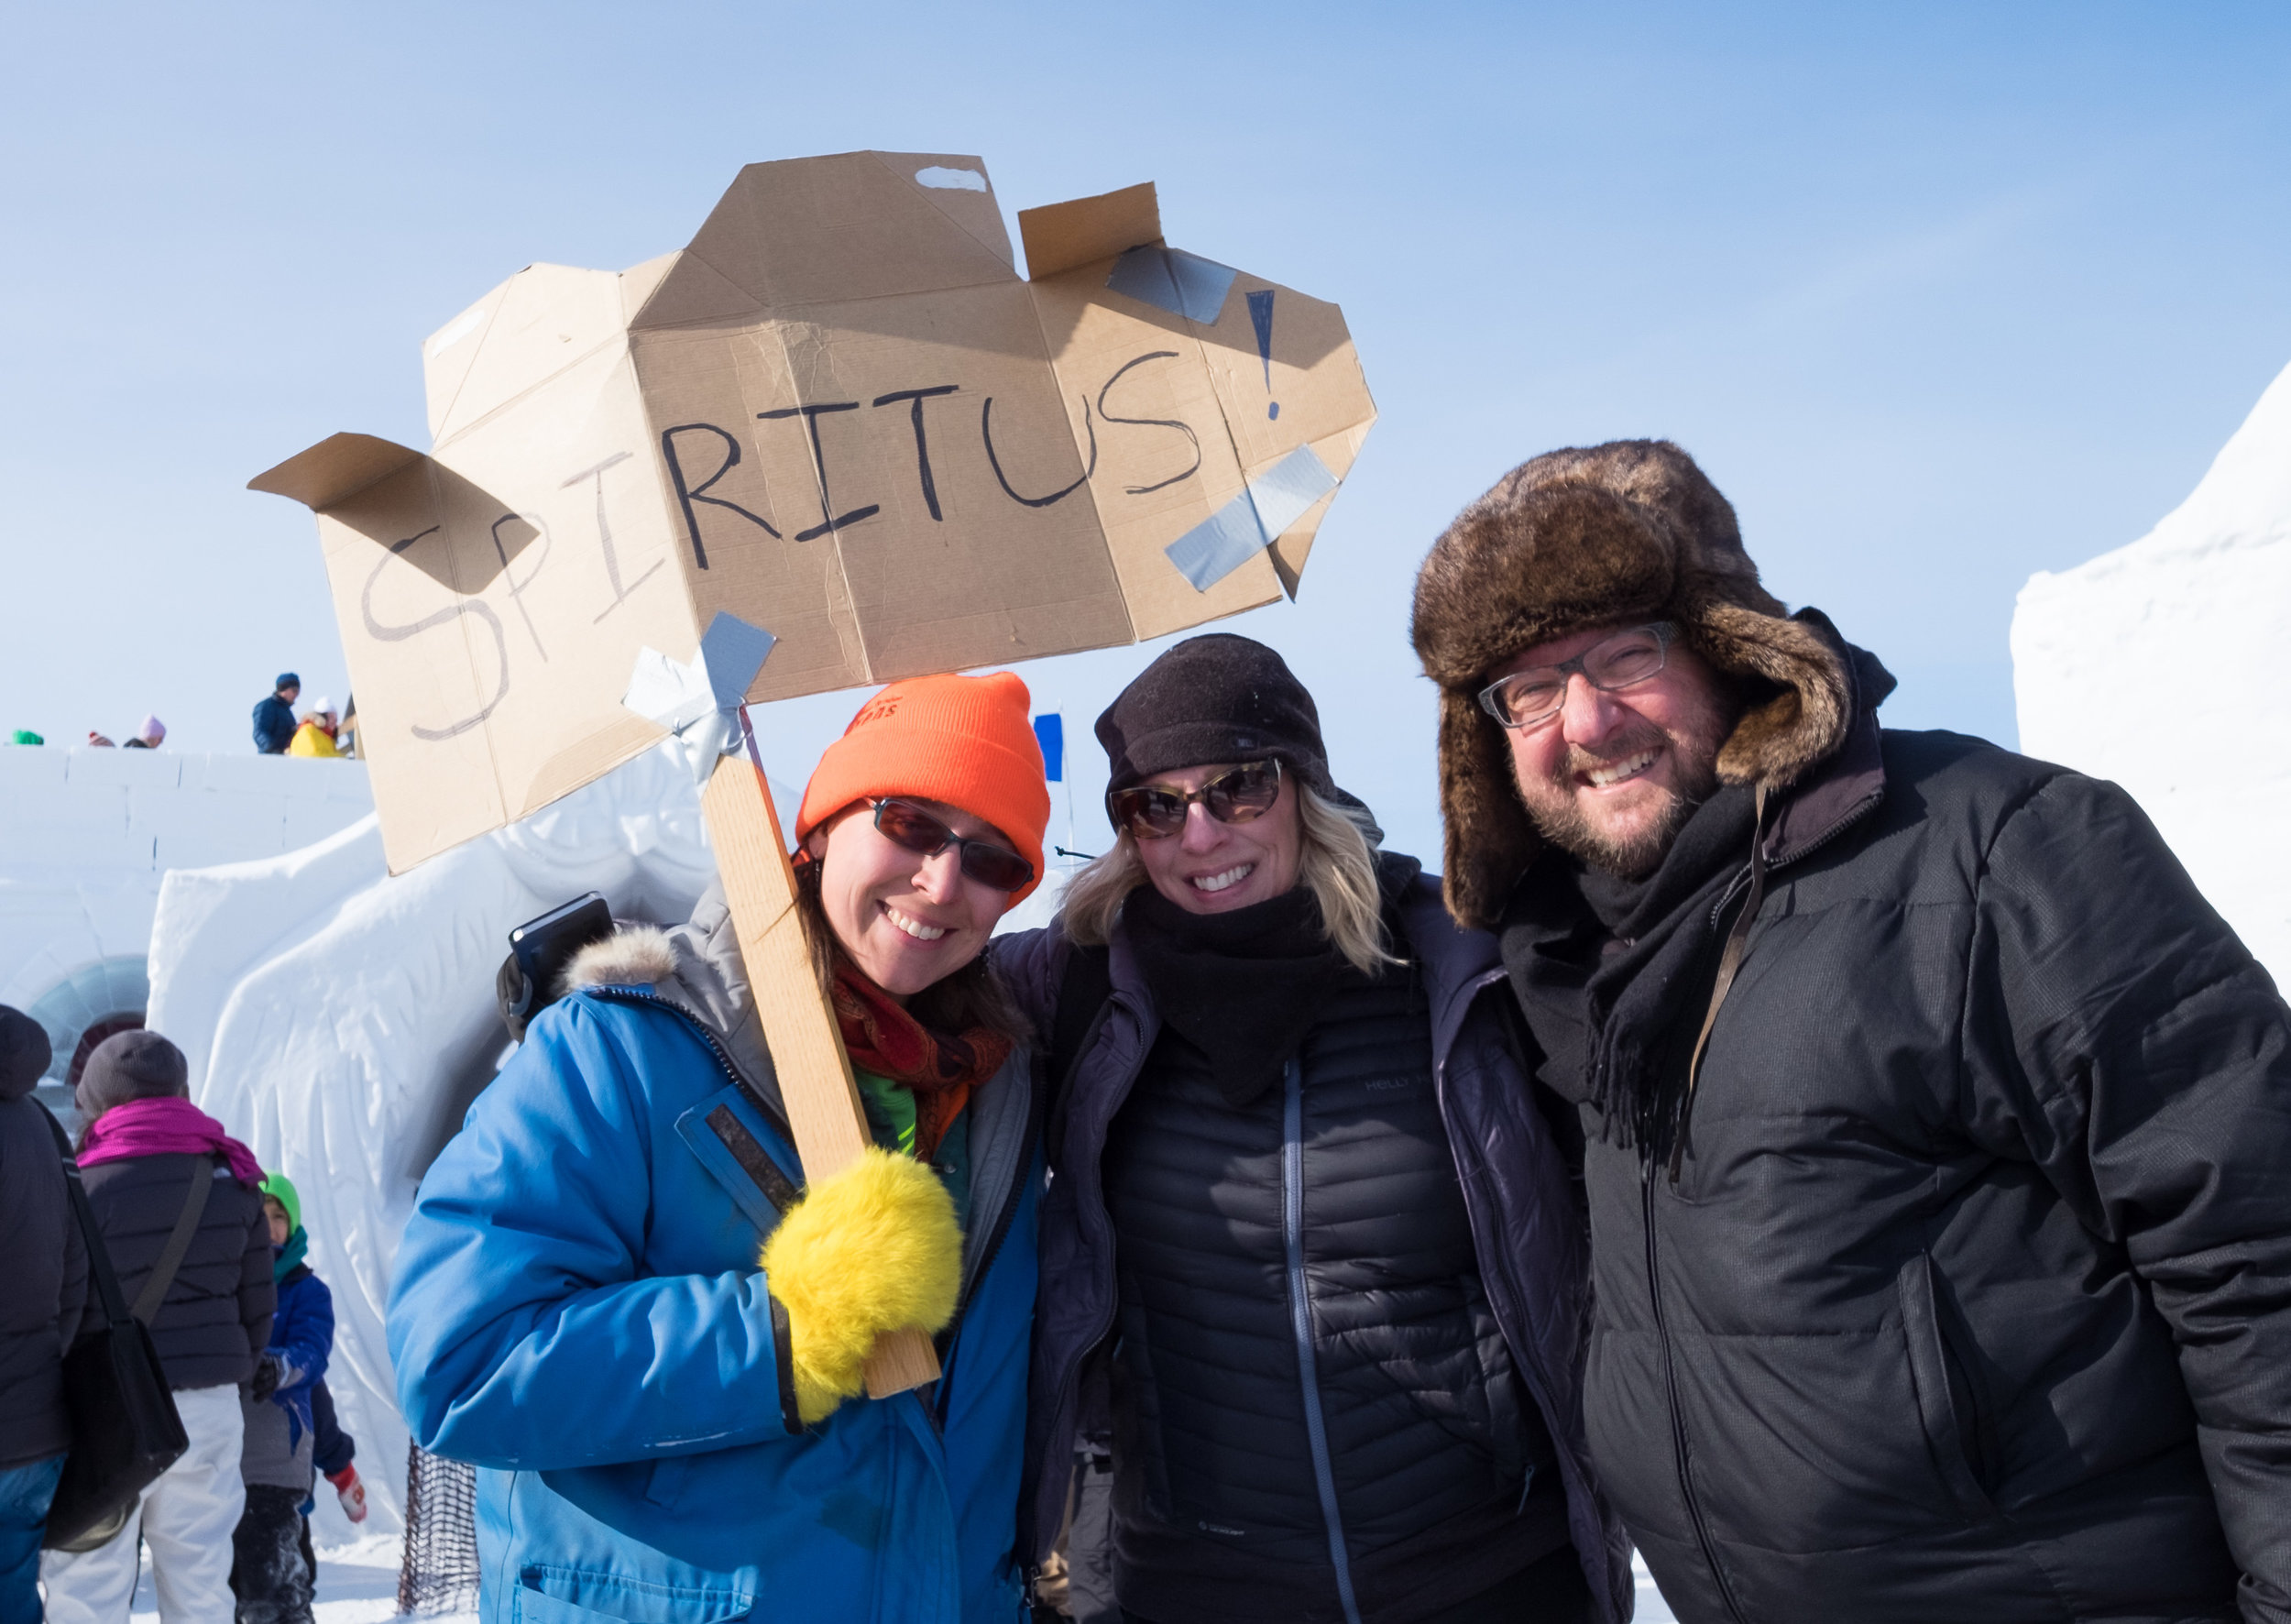 Spiritus Choir in Yellowknife at Snowking festival - Tim Shants Carmen Braden Heather Slater and Sign.jpg